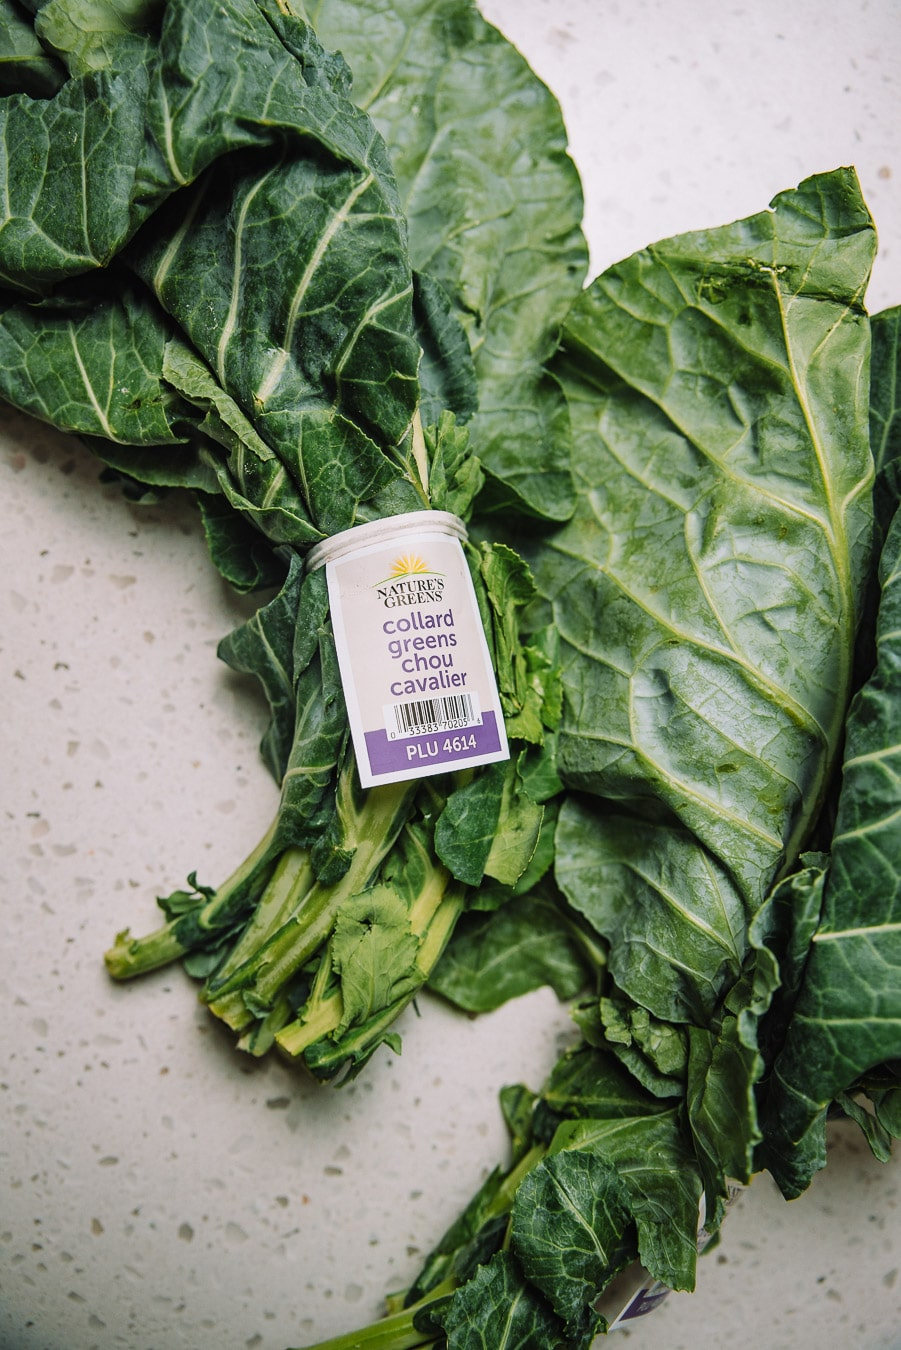 How to wash bunched leafy greens